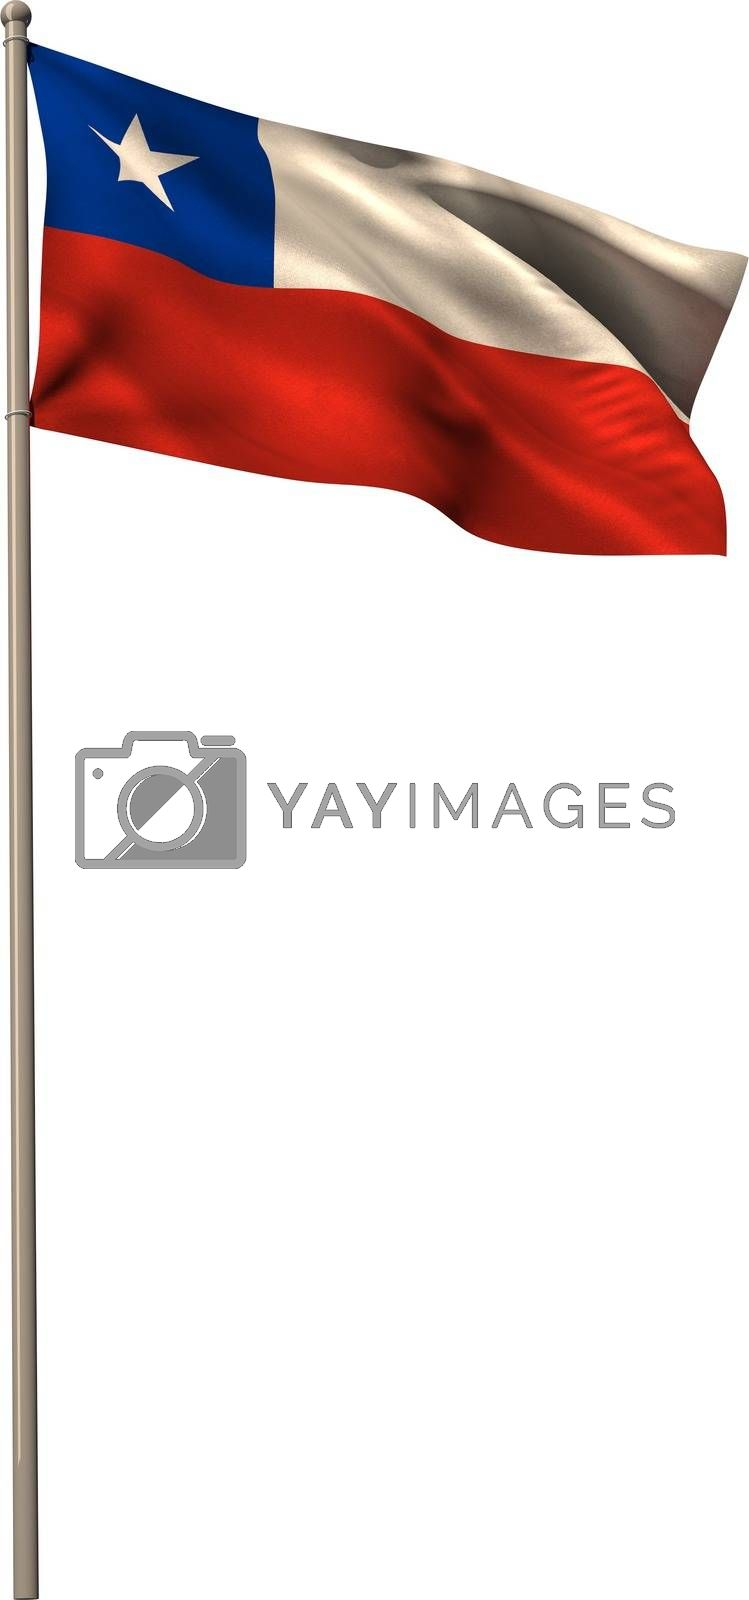 Royalty free image of Digitally generated chile national flag by Wavebreakmedia